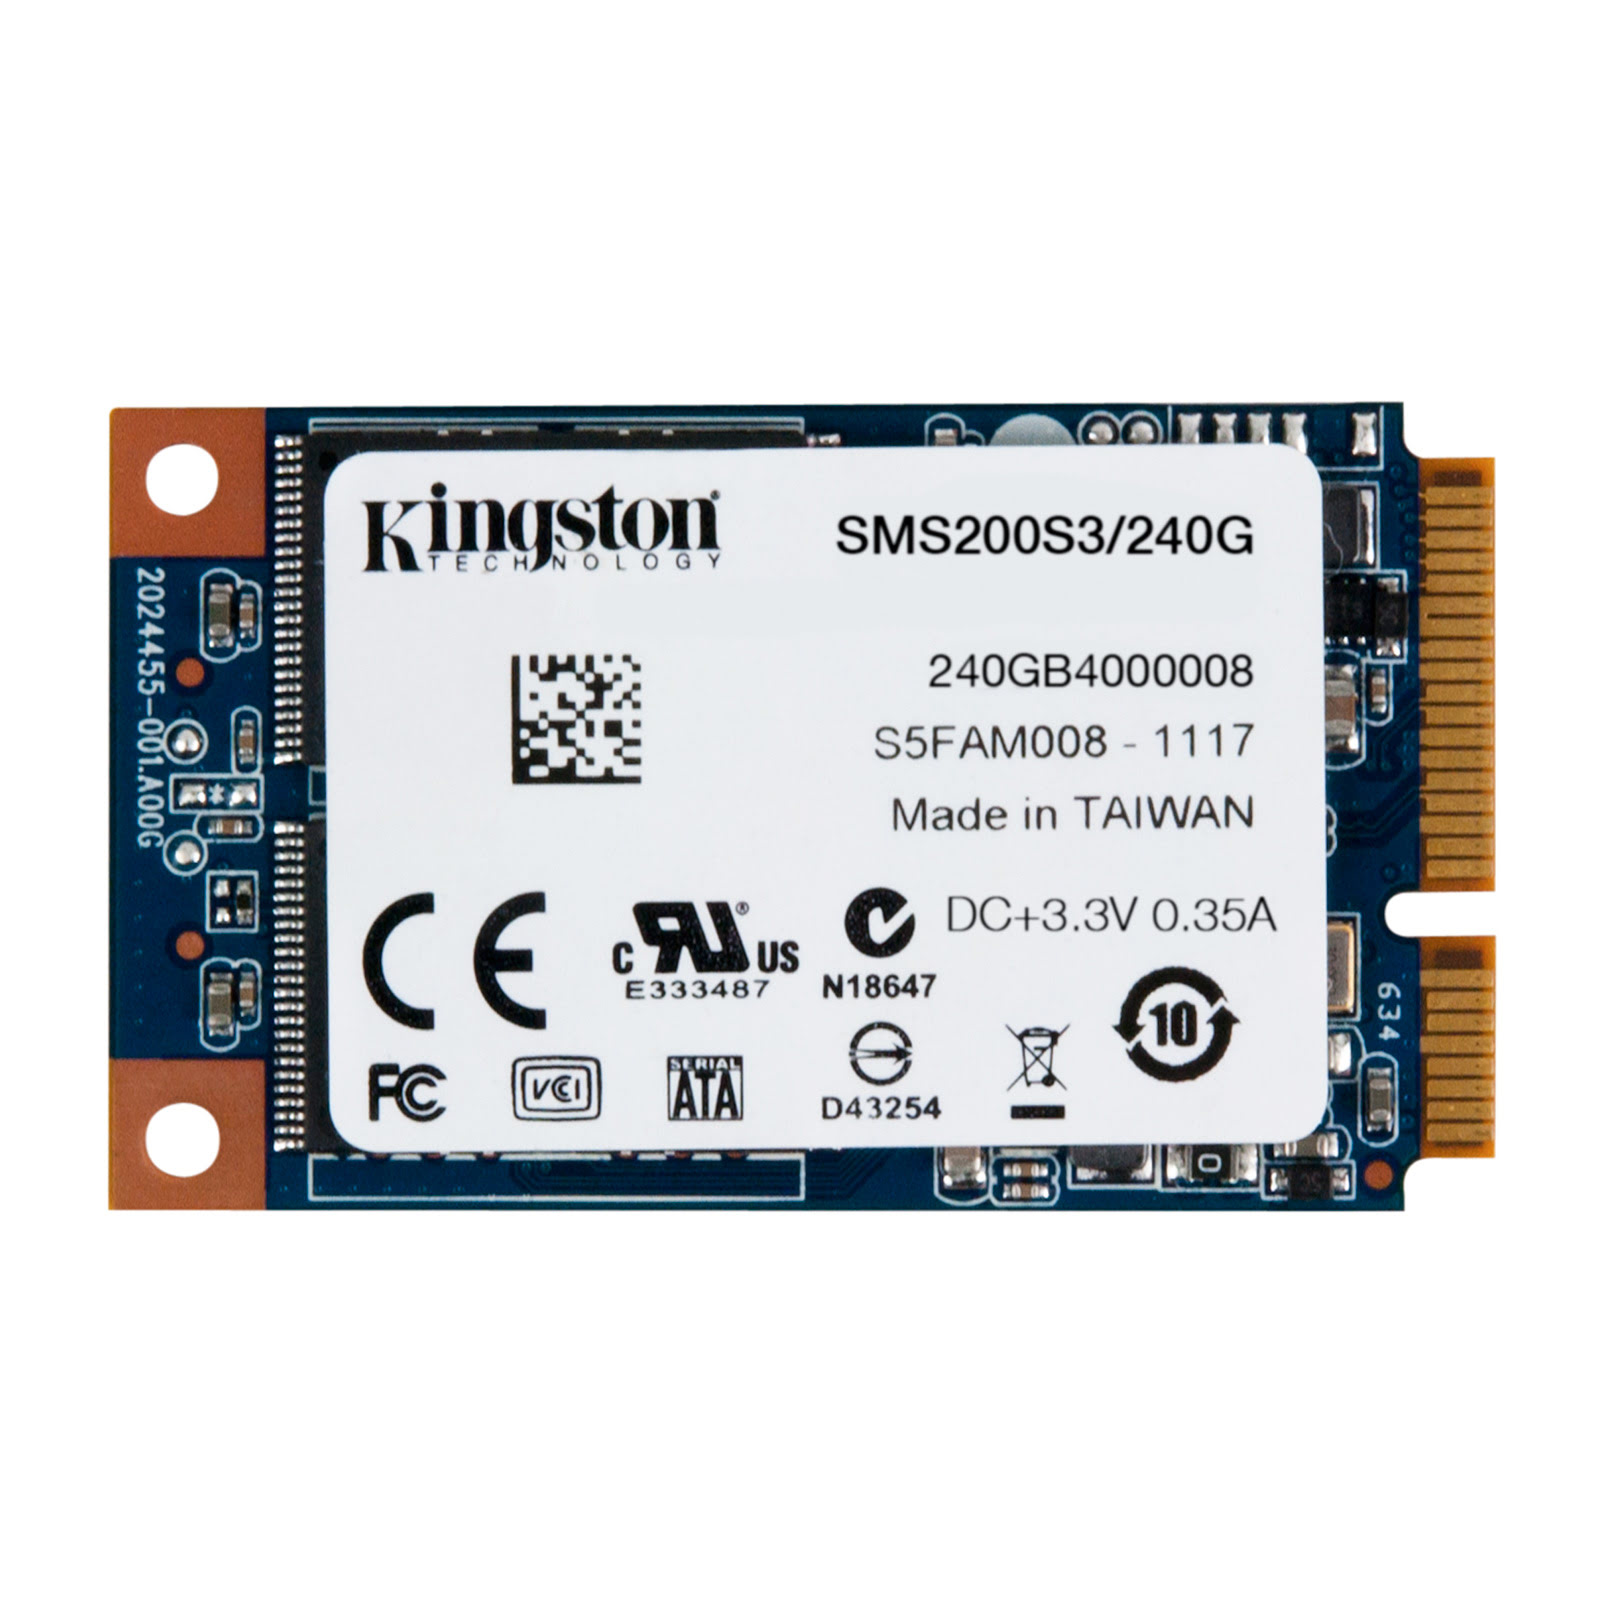 Kingston SMS200S3/240G 240-275Go - Disque SSD Kingston - 0